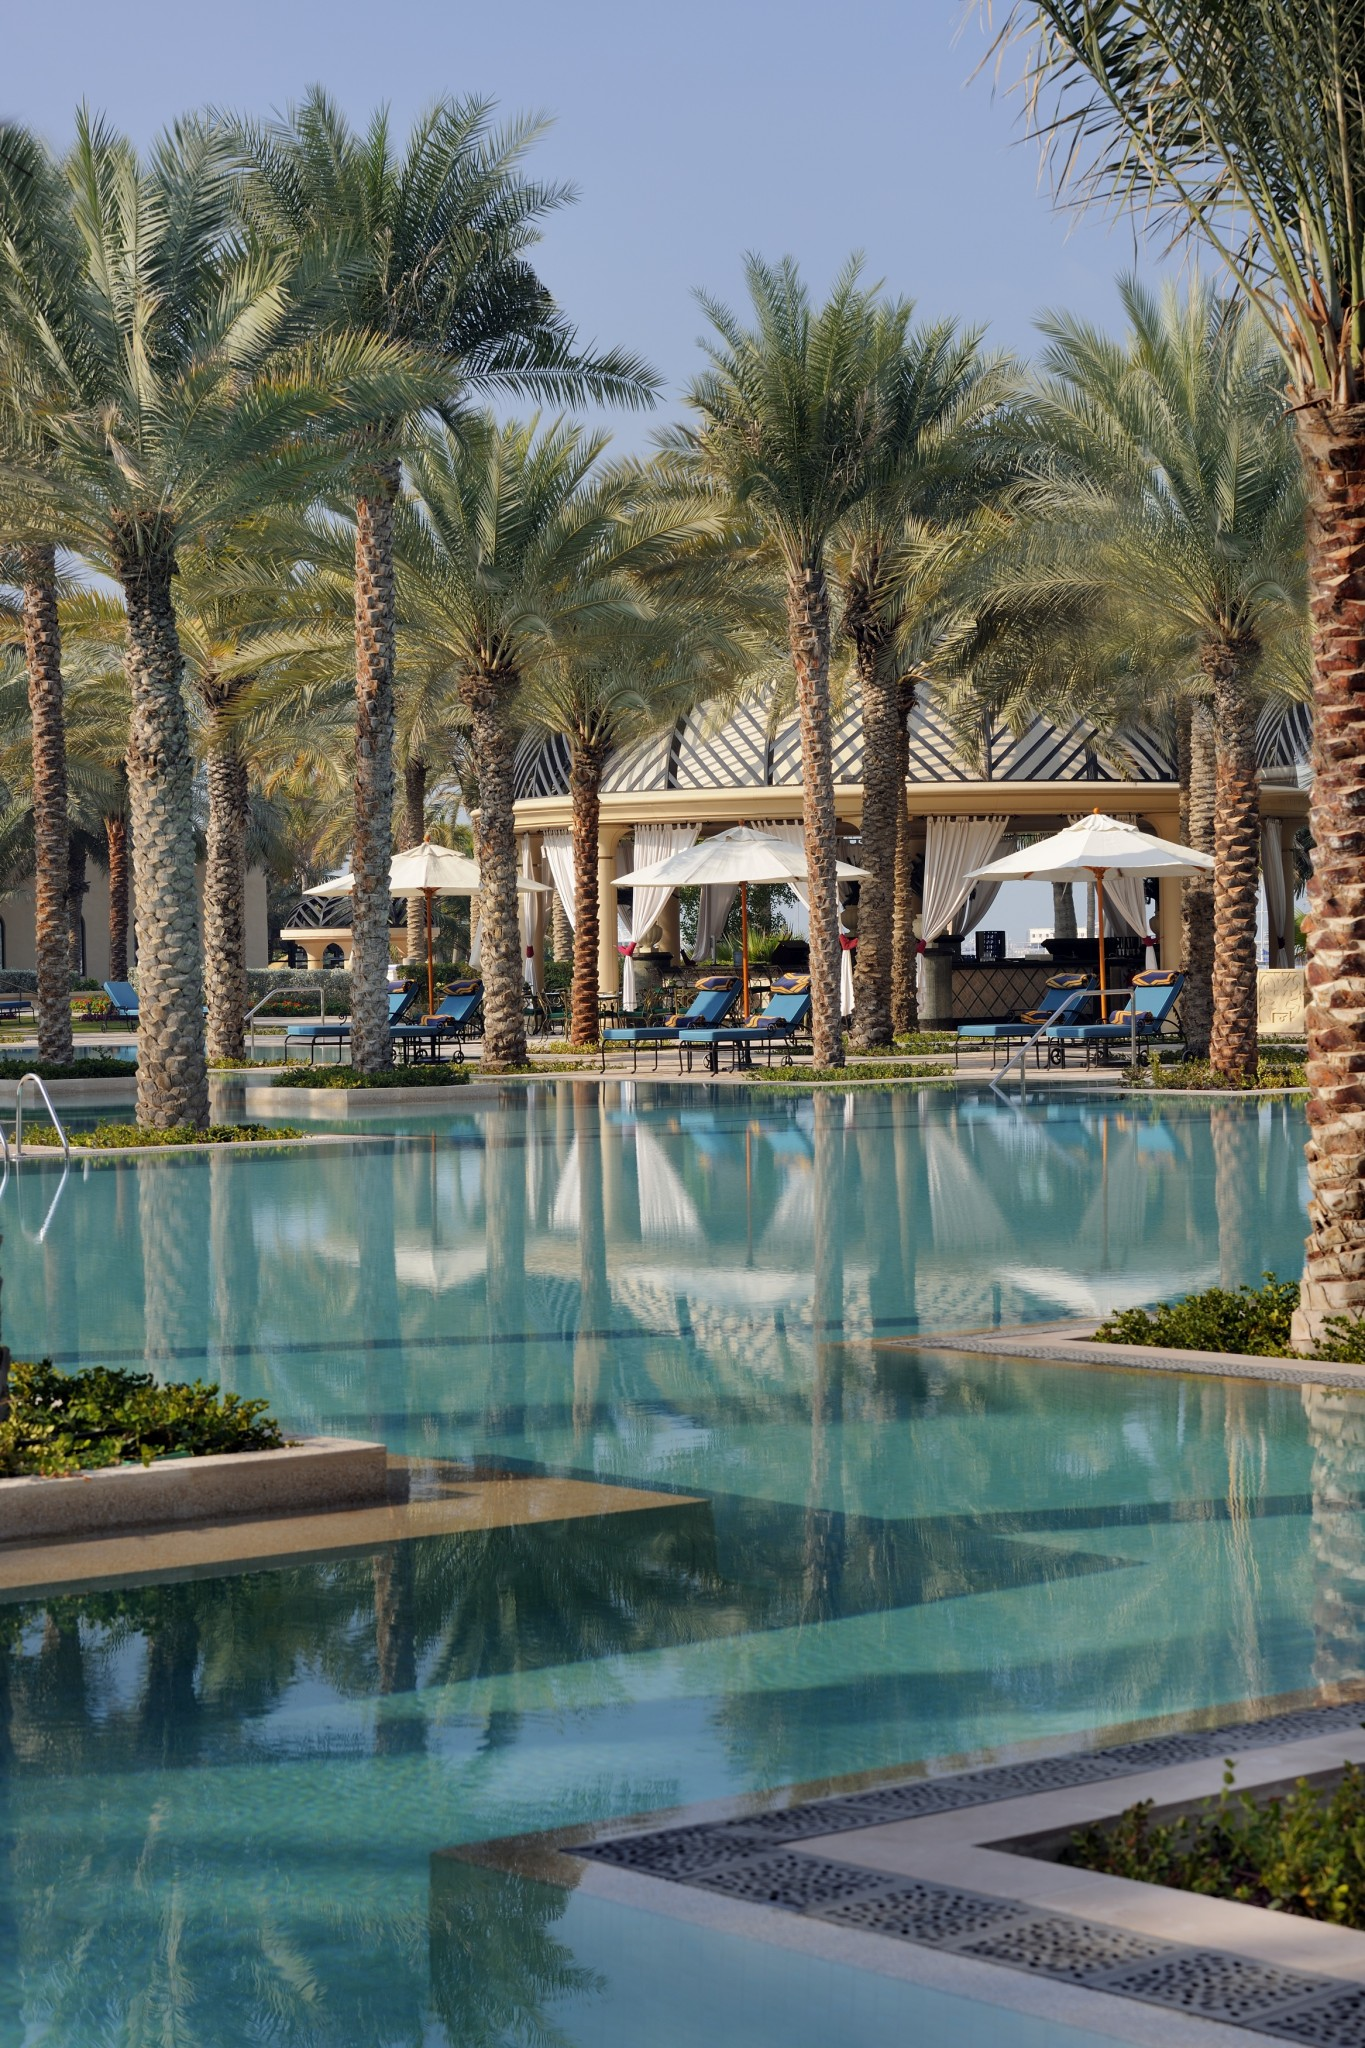 OneAndOnly_RoyalMirage_Resort_PoolsAndBeaches_Pools_ThePalaceGrandPool2_HR